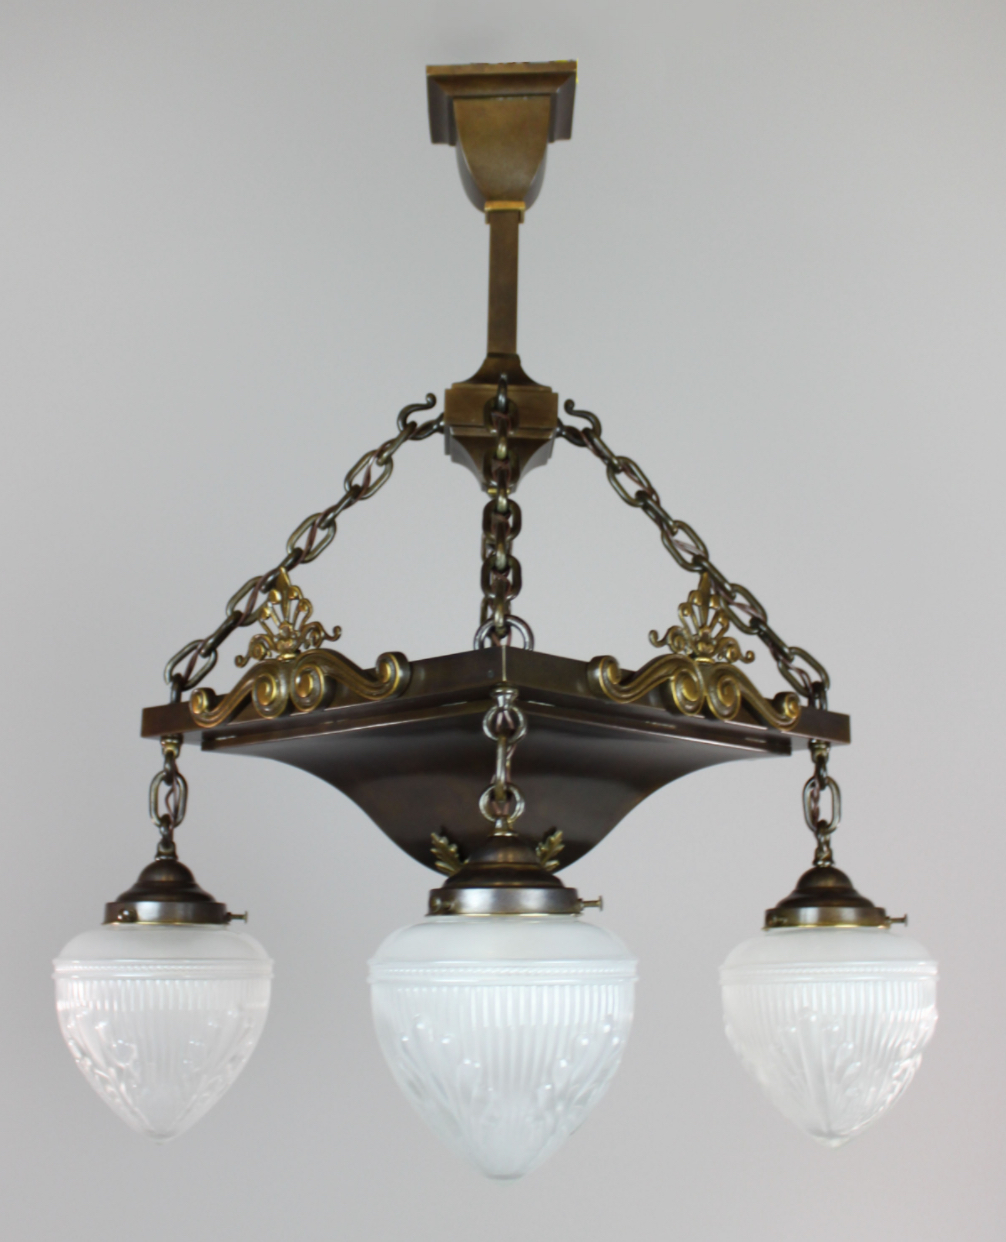 Edwardian arts and crafts 4 light fixture modernism edwardian arts and crafts 4 light fixture arubaitofo Gallery